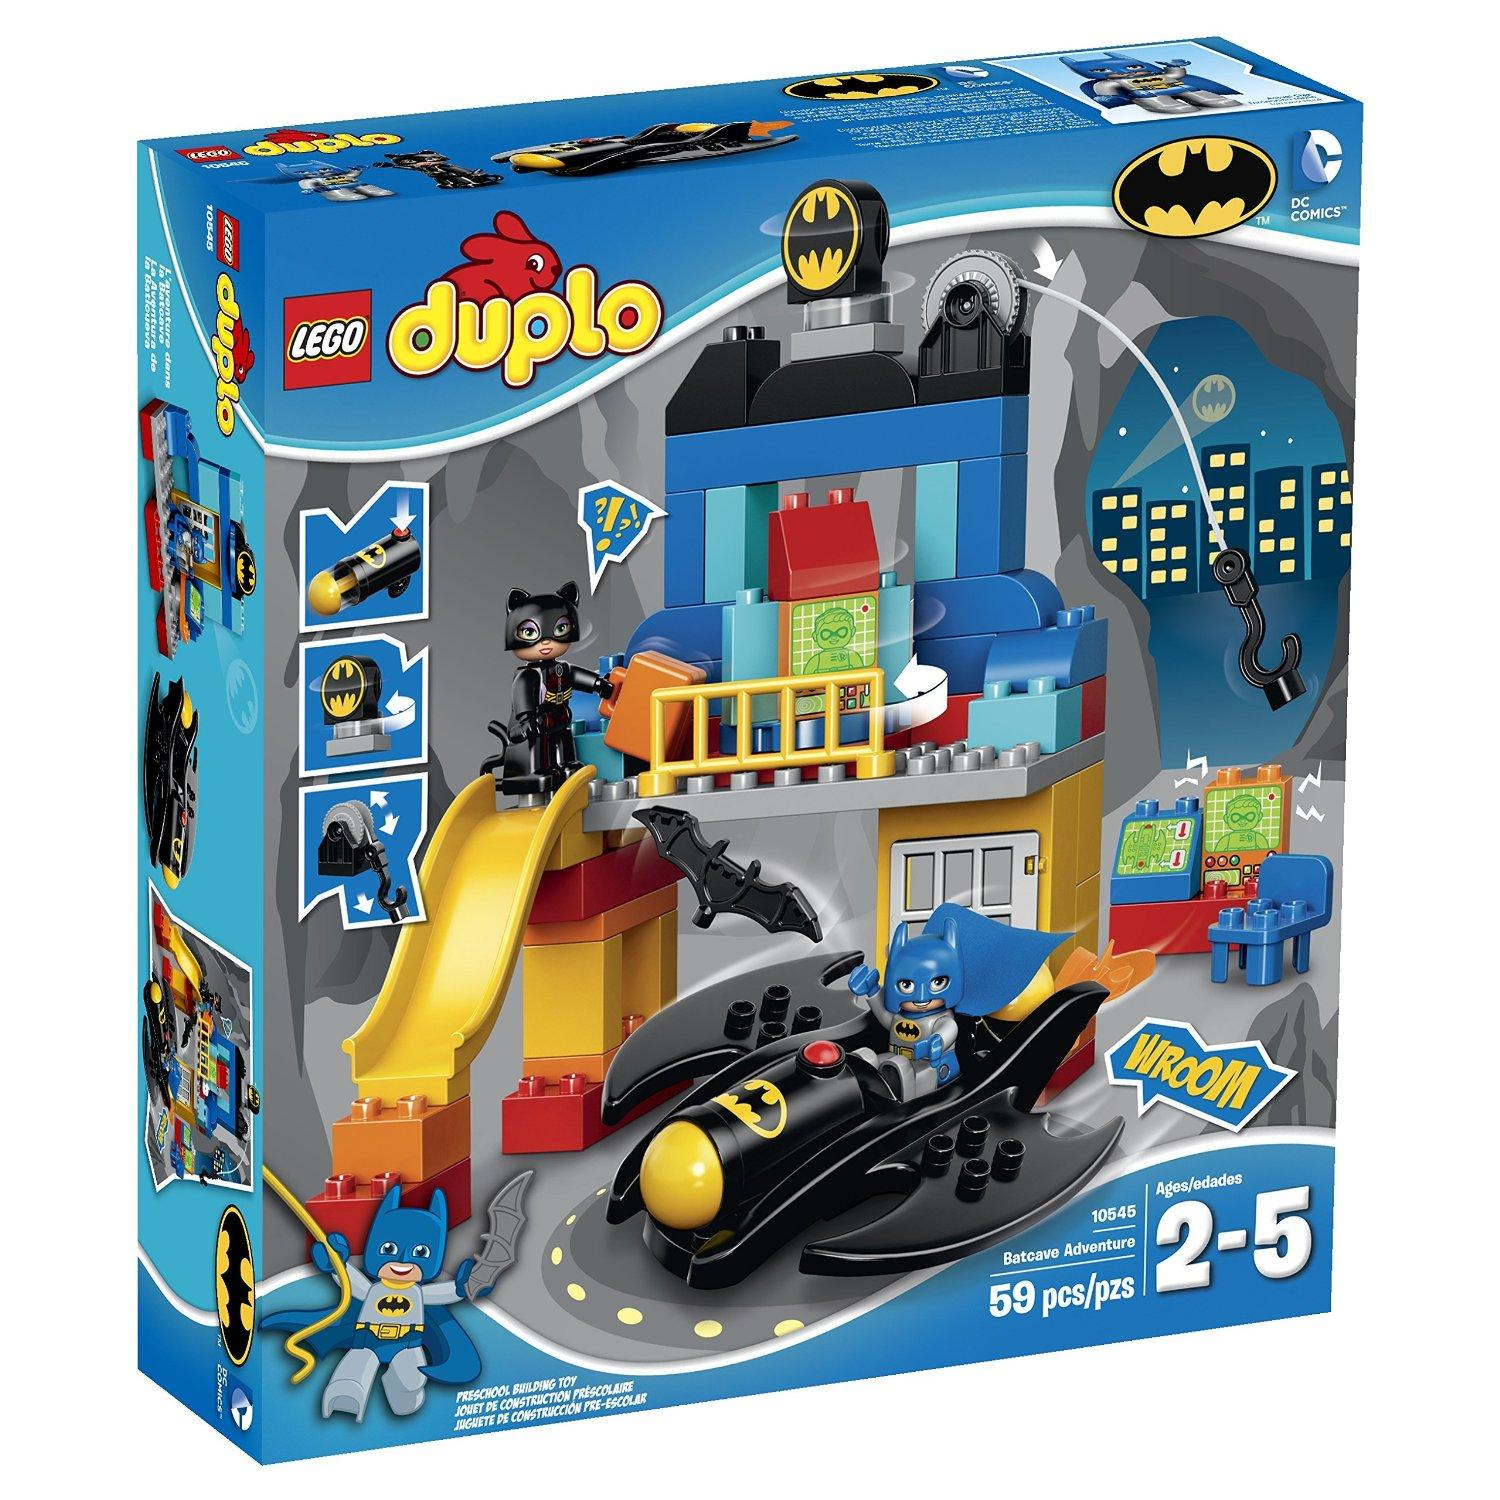 LEGO Super Heroes Batcave Adventure